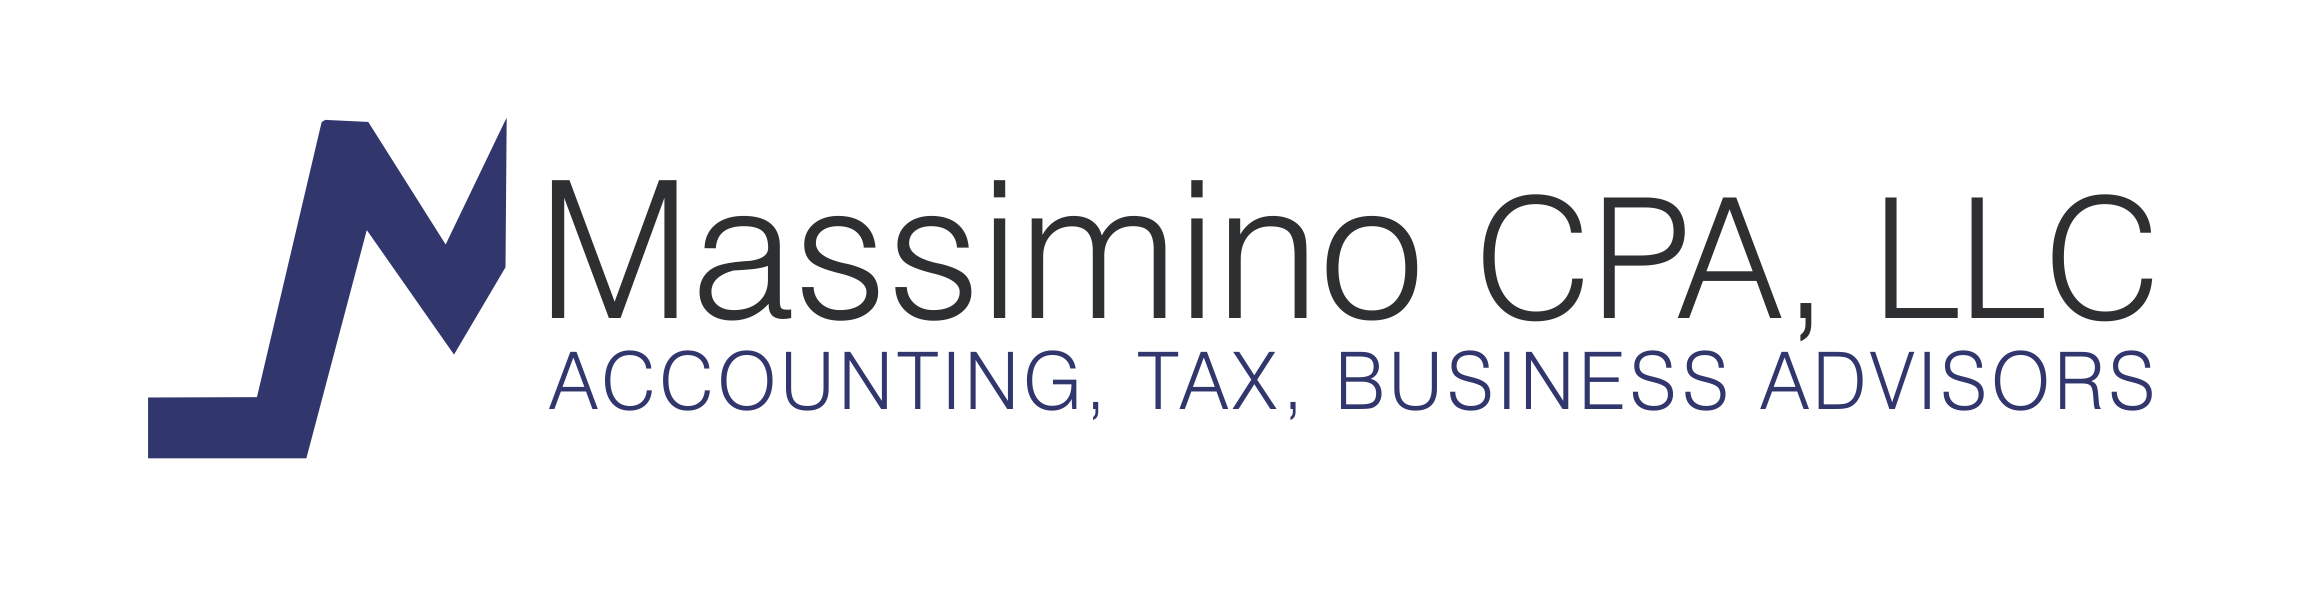 Lowell, MA CPA Firm | Forensic Accounting Page | Massimino CPA, LLC